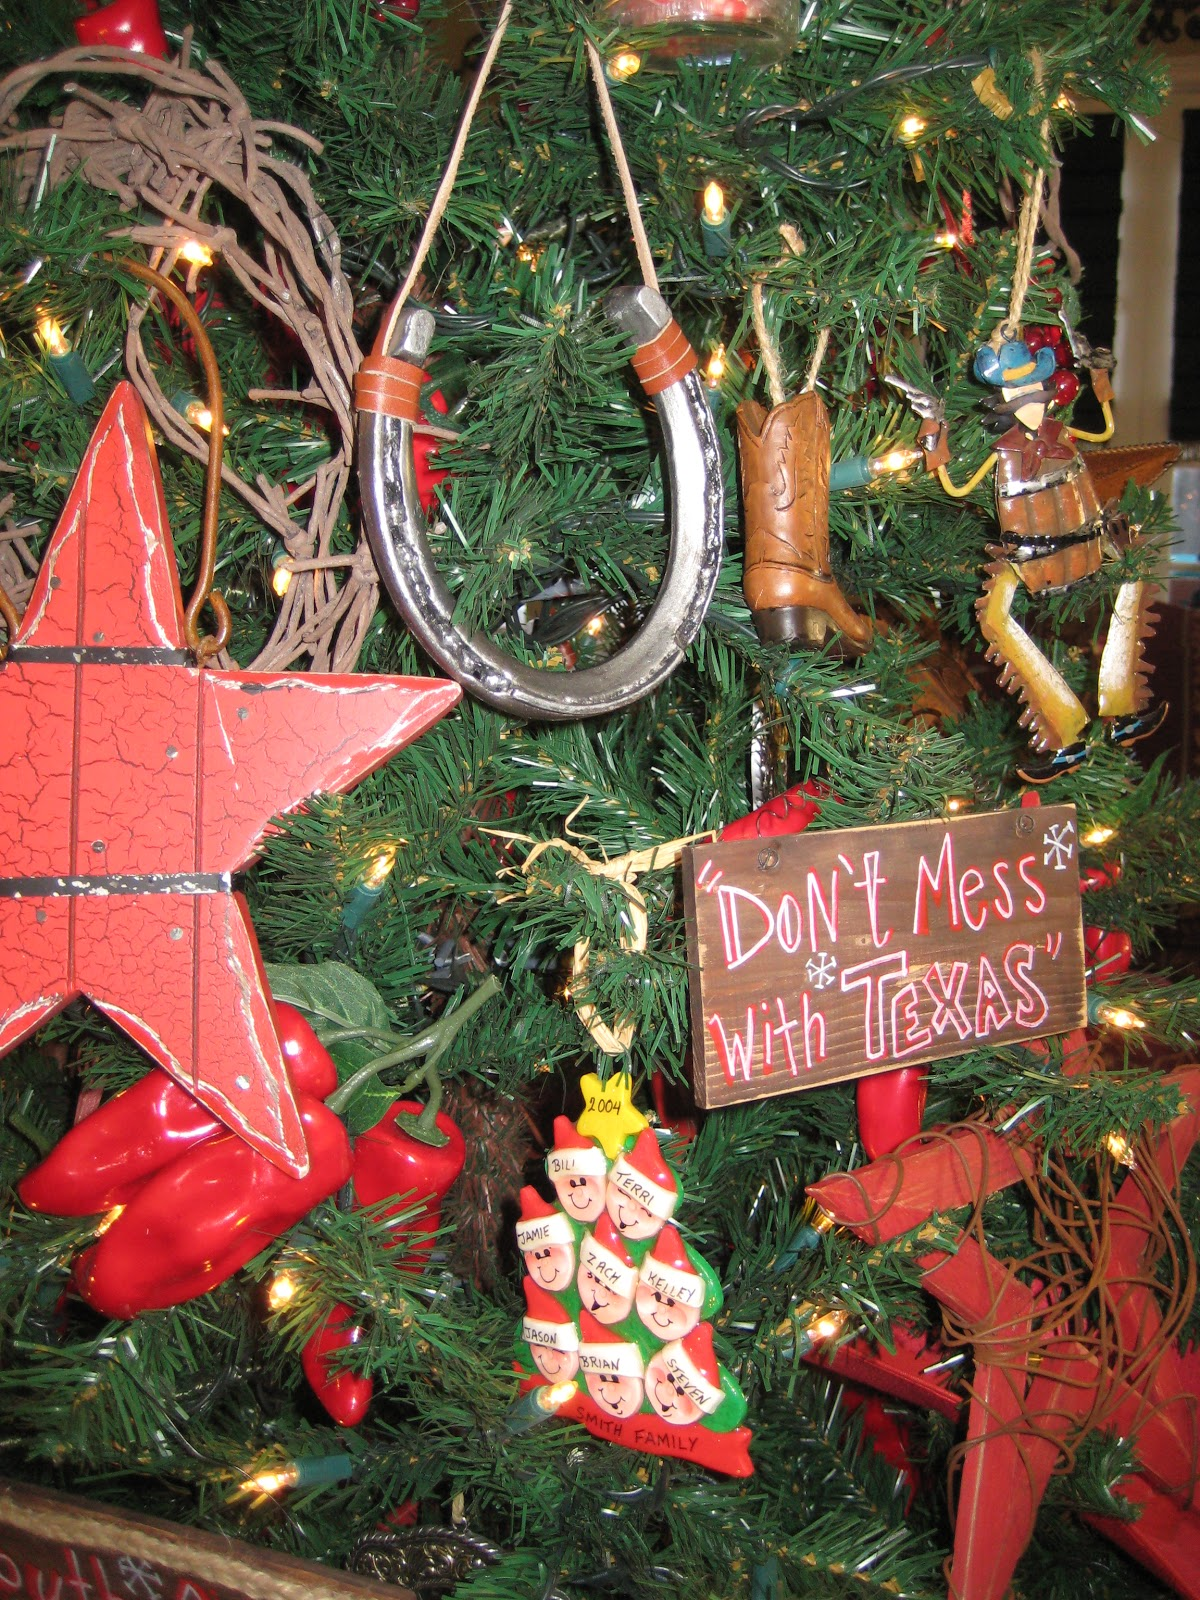 17 Best images about Houston texans on Pinterest ...  Texans Christmas Tree